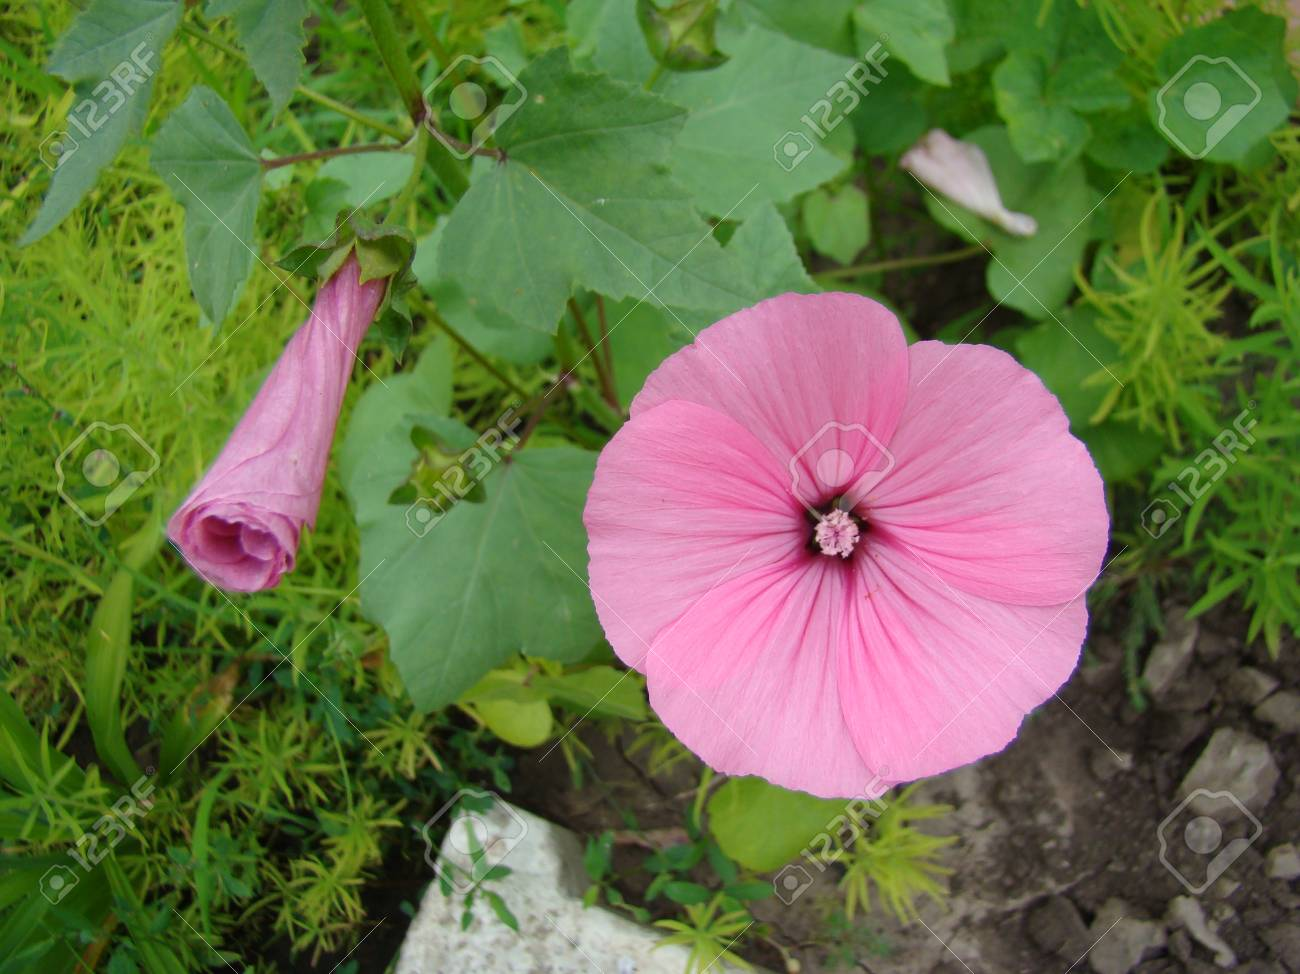 Lavatera growing from seed 91